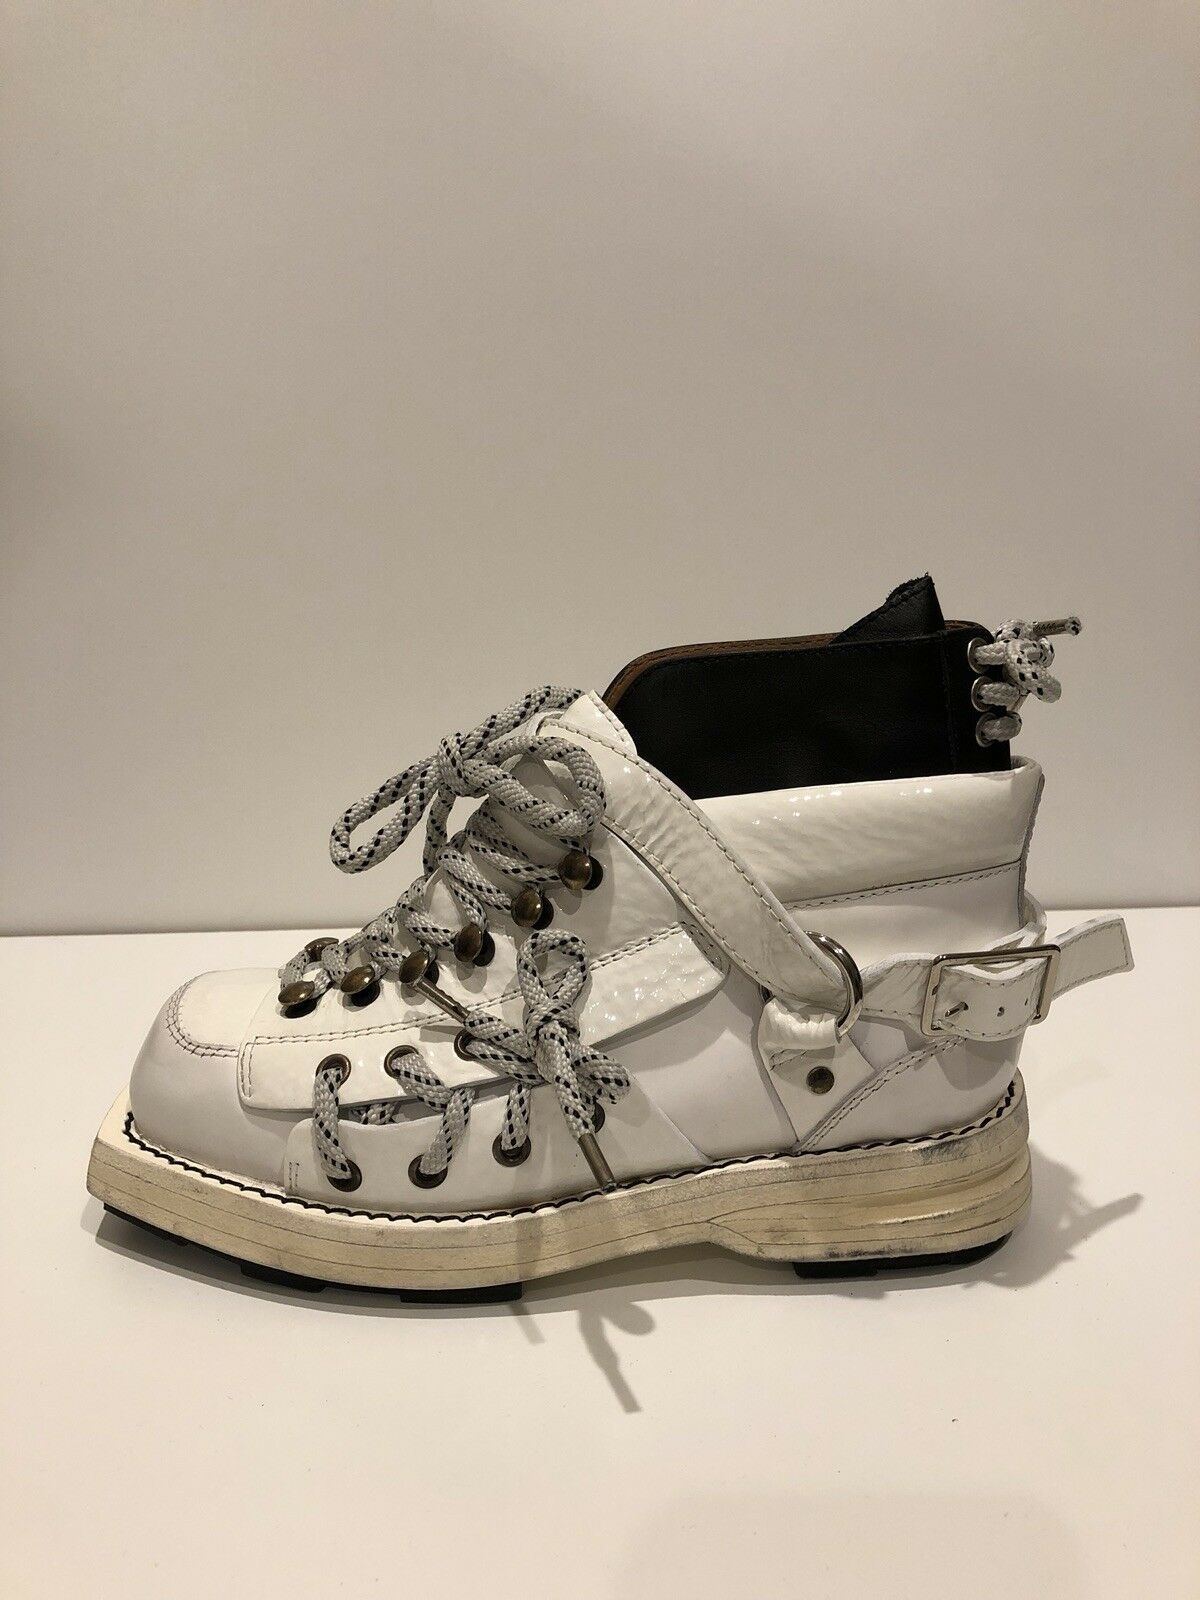 Acne Studios New  1,250 Heidi High Top White Leather Boots (Size  35EU 5US)